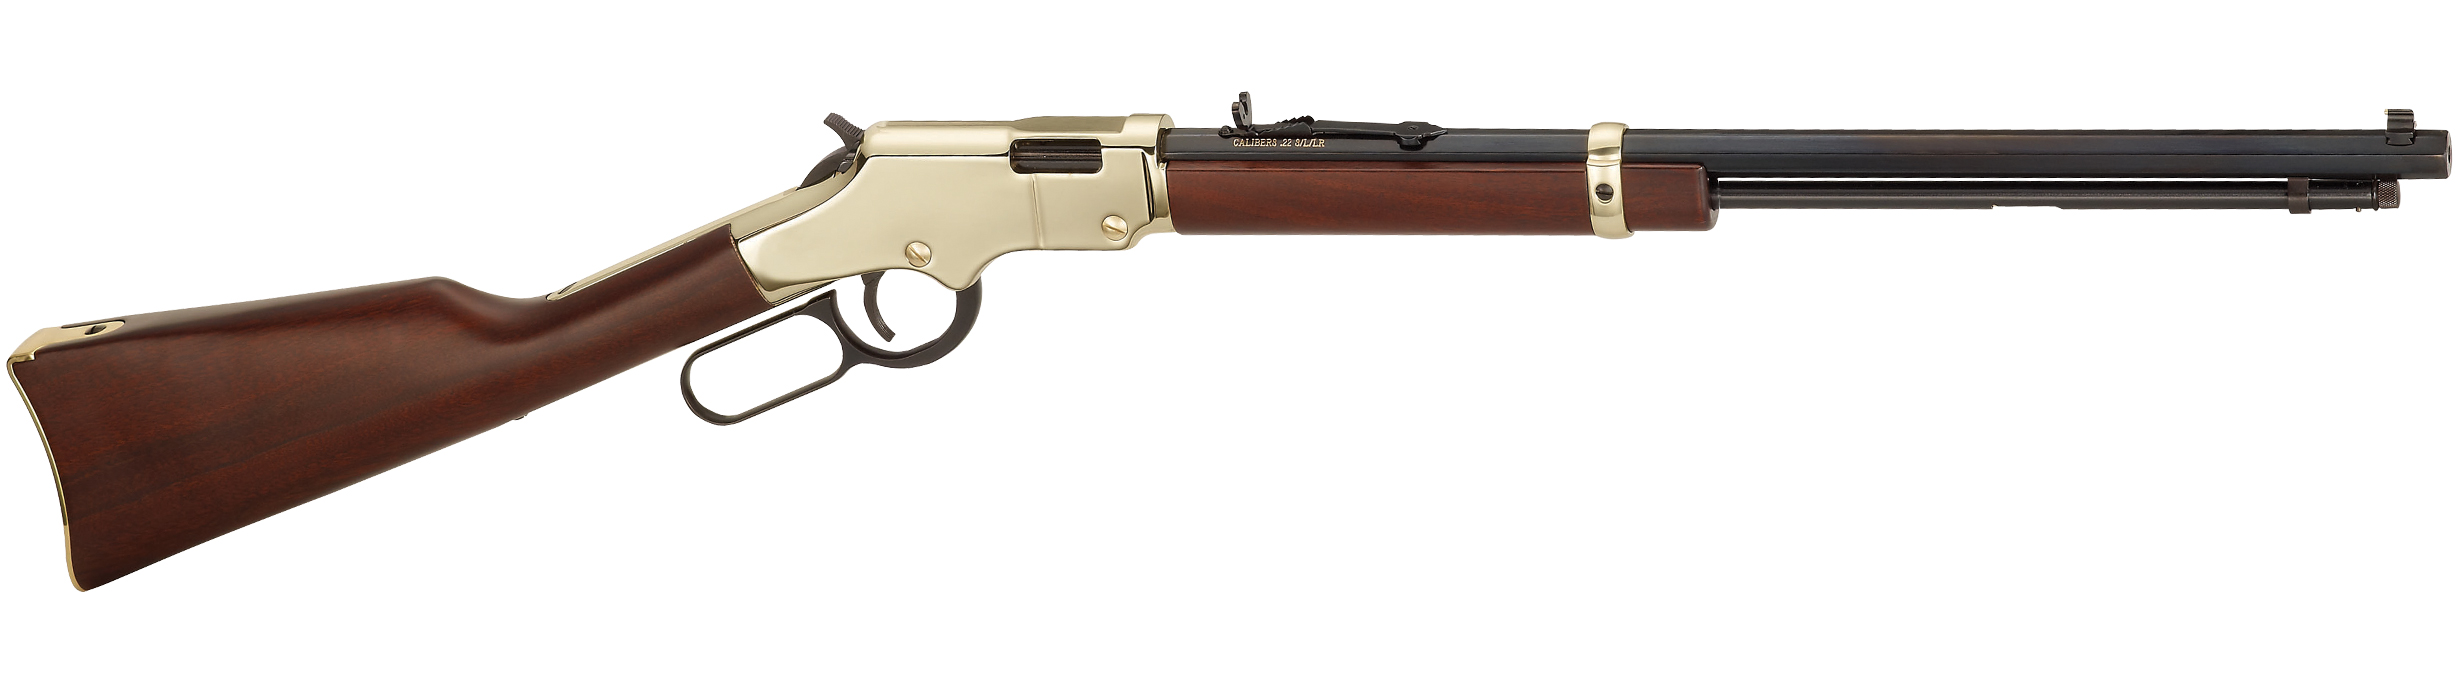 Rifle clipart .22 Rifle Repeating Boy Arms Golden